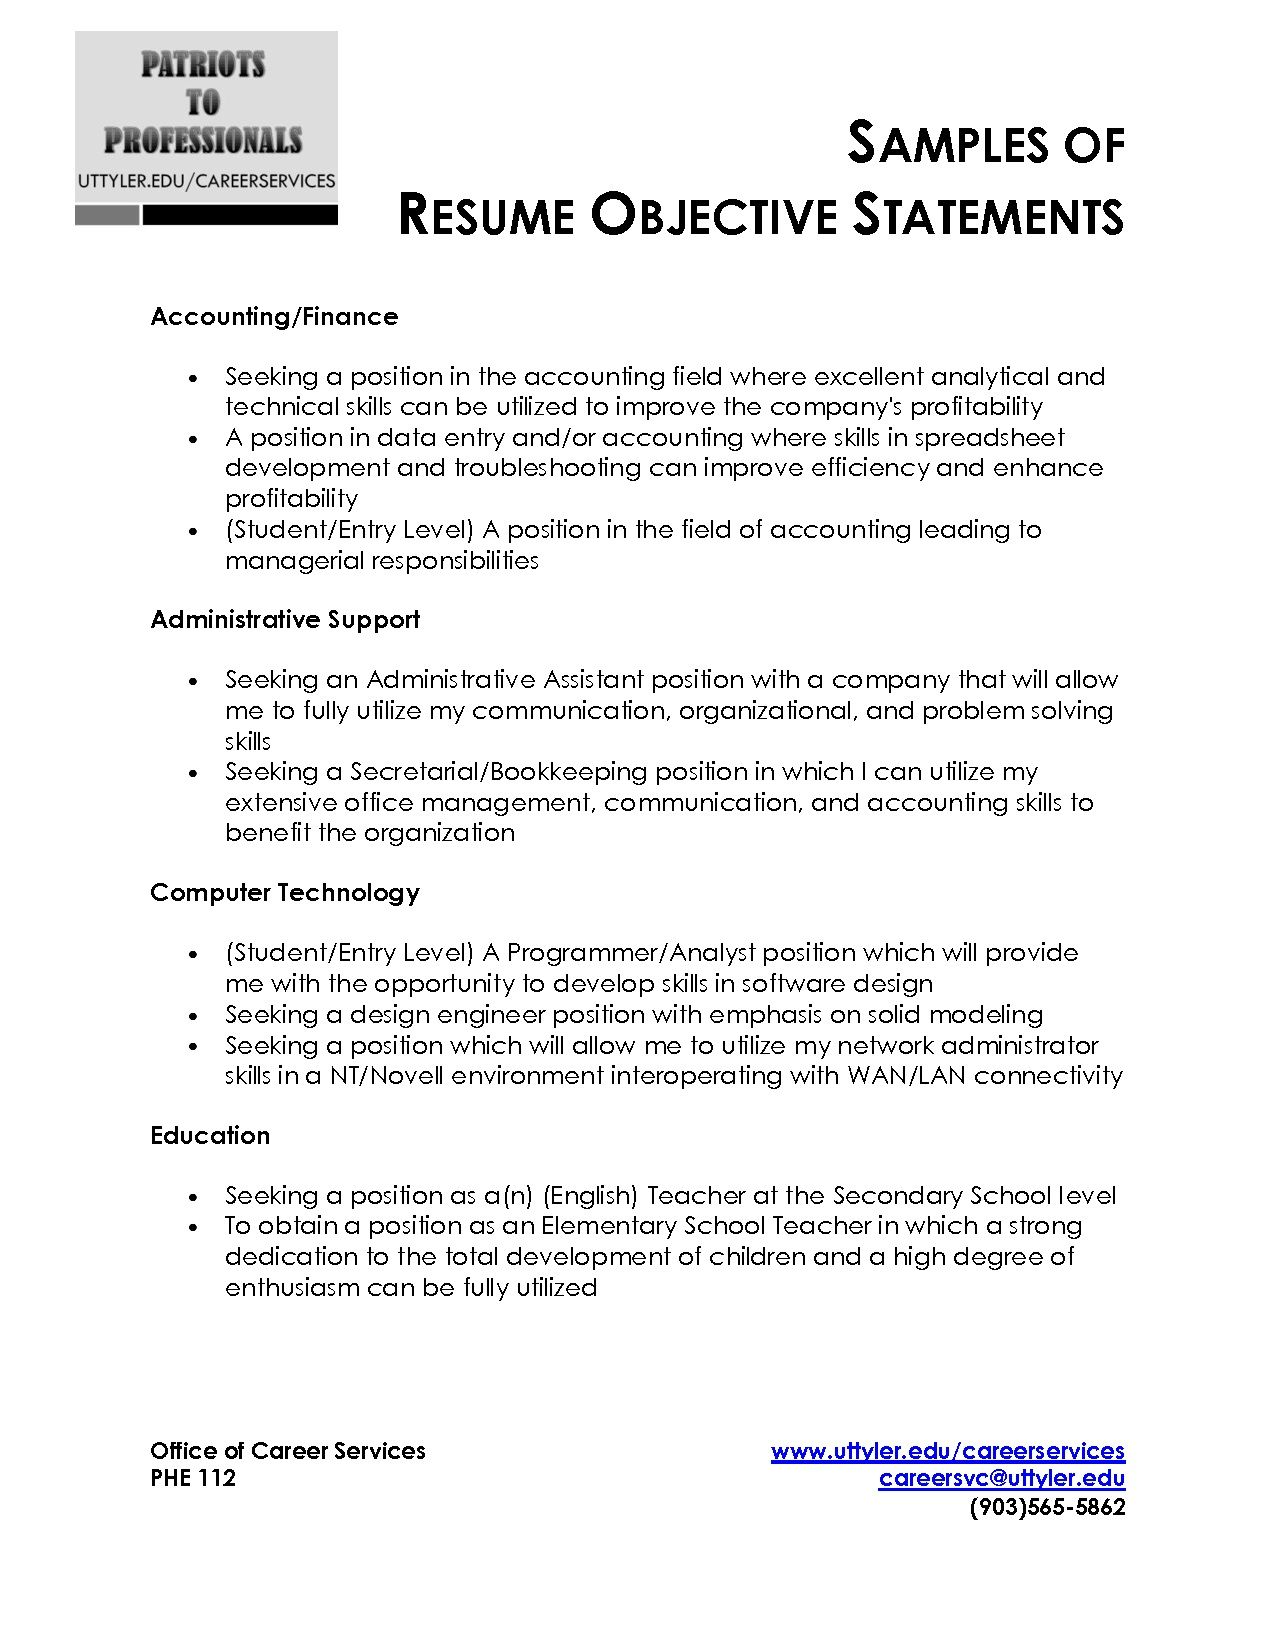 Exceptional Sample Resume Objective Statement   (adsbygoogle U003d Window.adsbygoogle || []) On Example Of Objective Statement